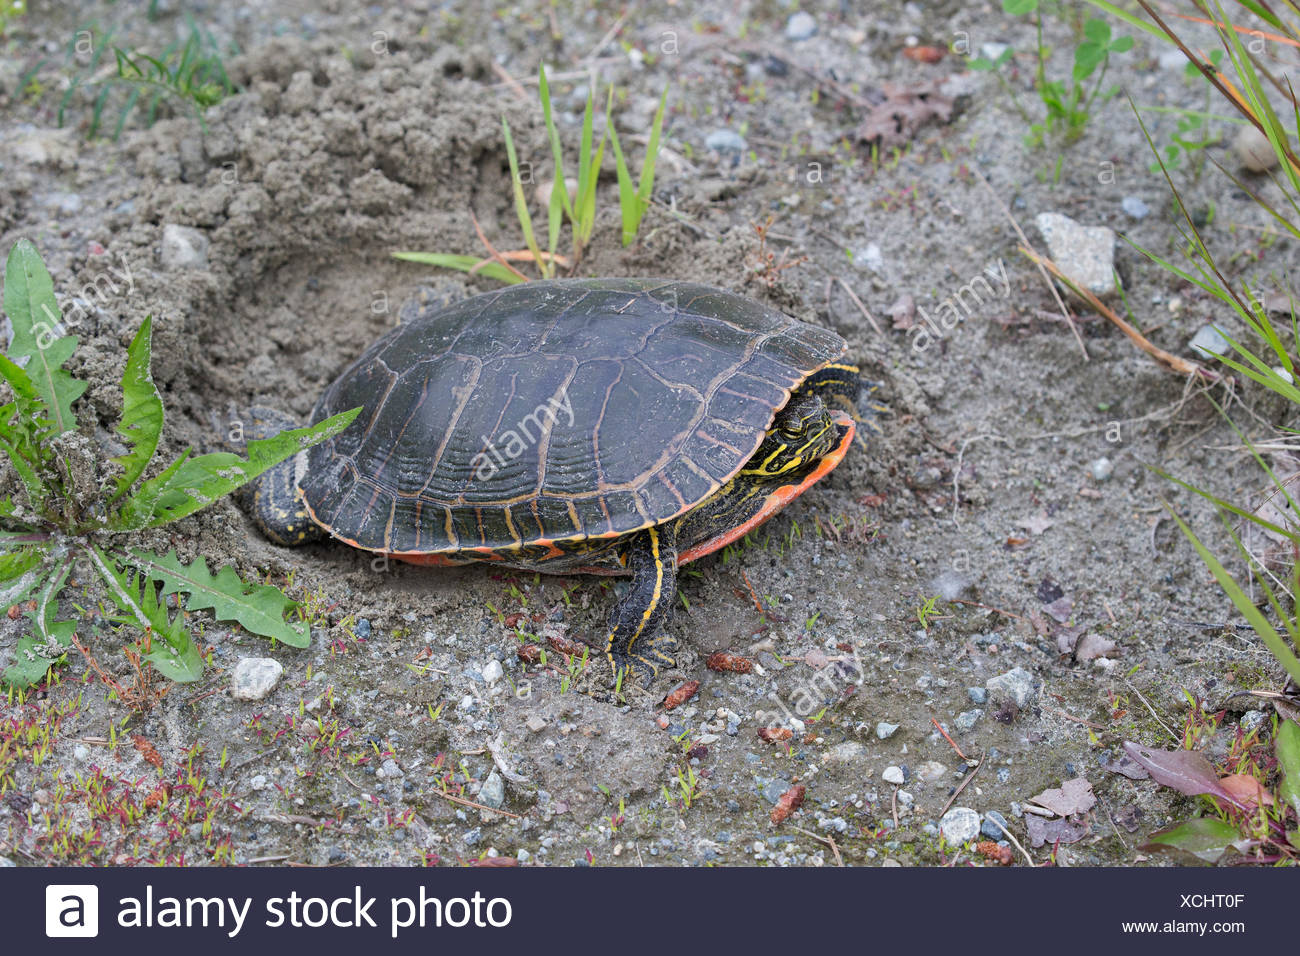 Western painted turtle (Chrysemys picta bellii), female using her hind legs to fill in her nest cavity where she has just laid a clutch of eggs, Nicomen Slough, Agassiz, British Columbia, Canada - Stock Image